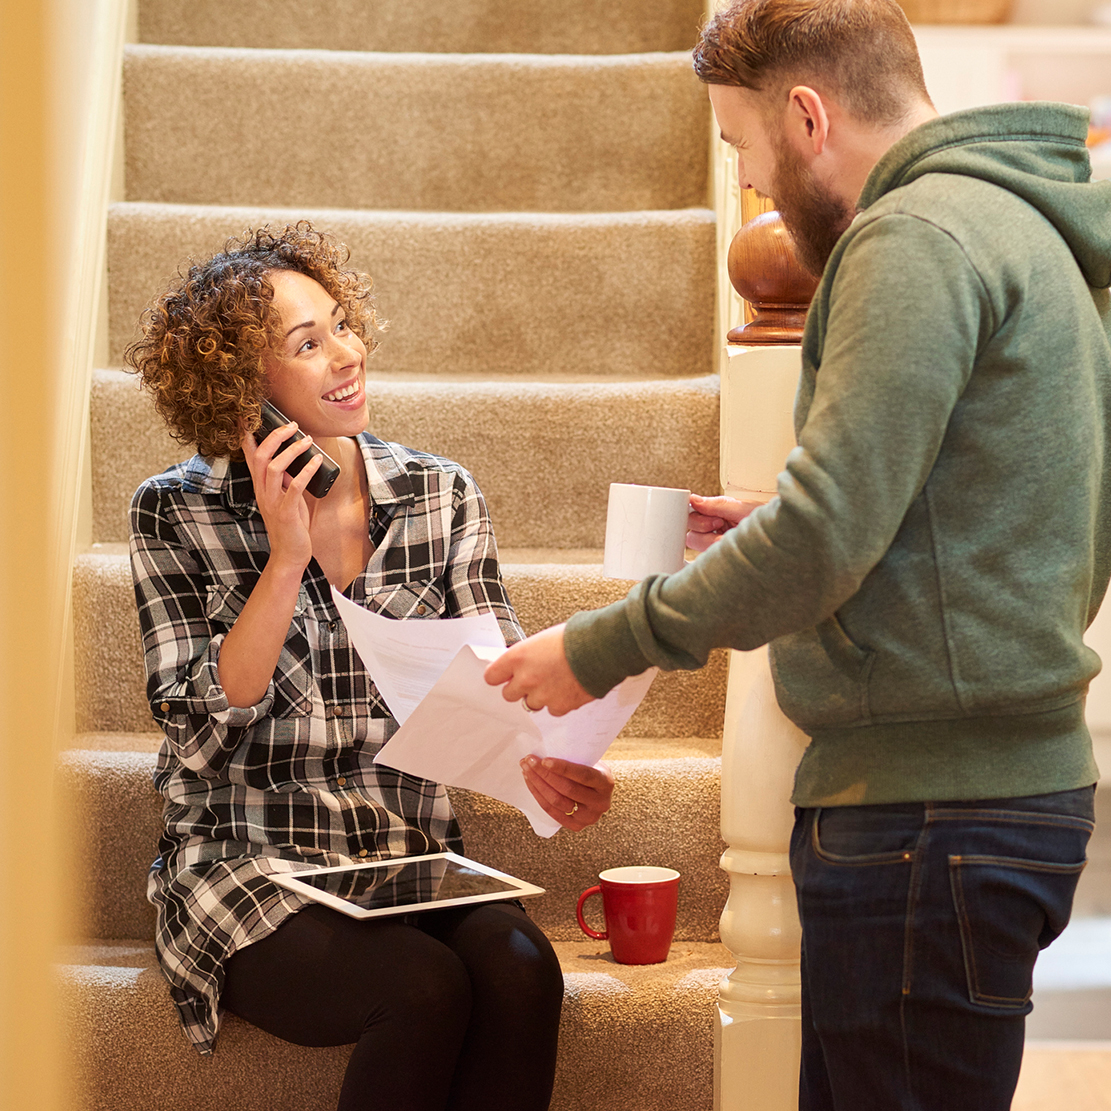 When is it Time to Buy a Home?